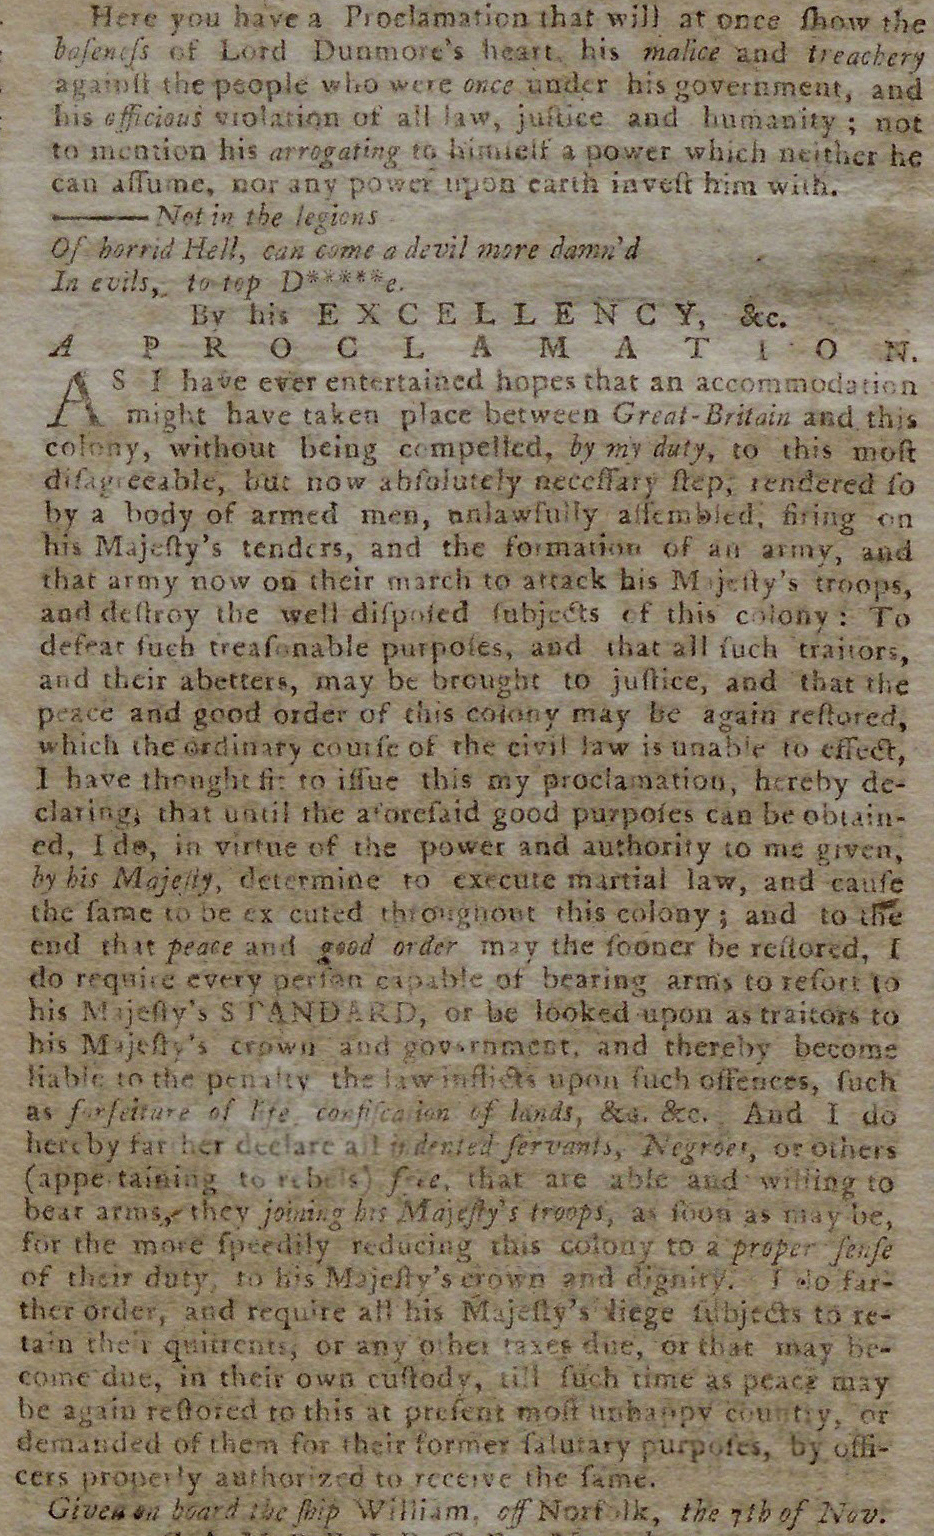 Dunmore's Proclamation, printed in the Pennsylvania Journal and Weekly Advertise